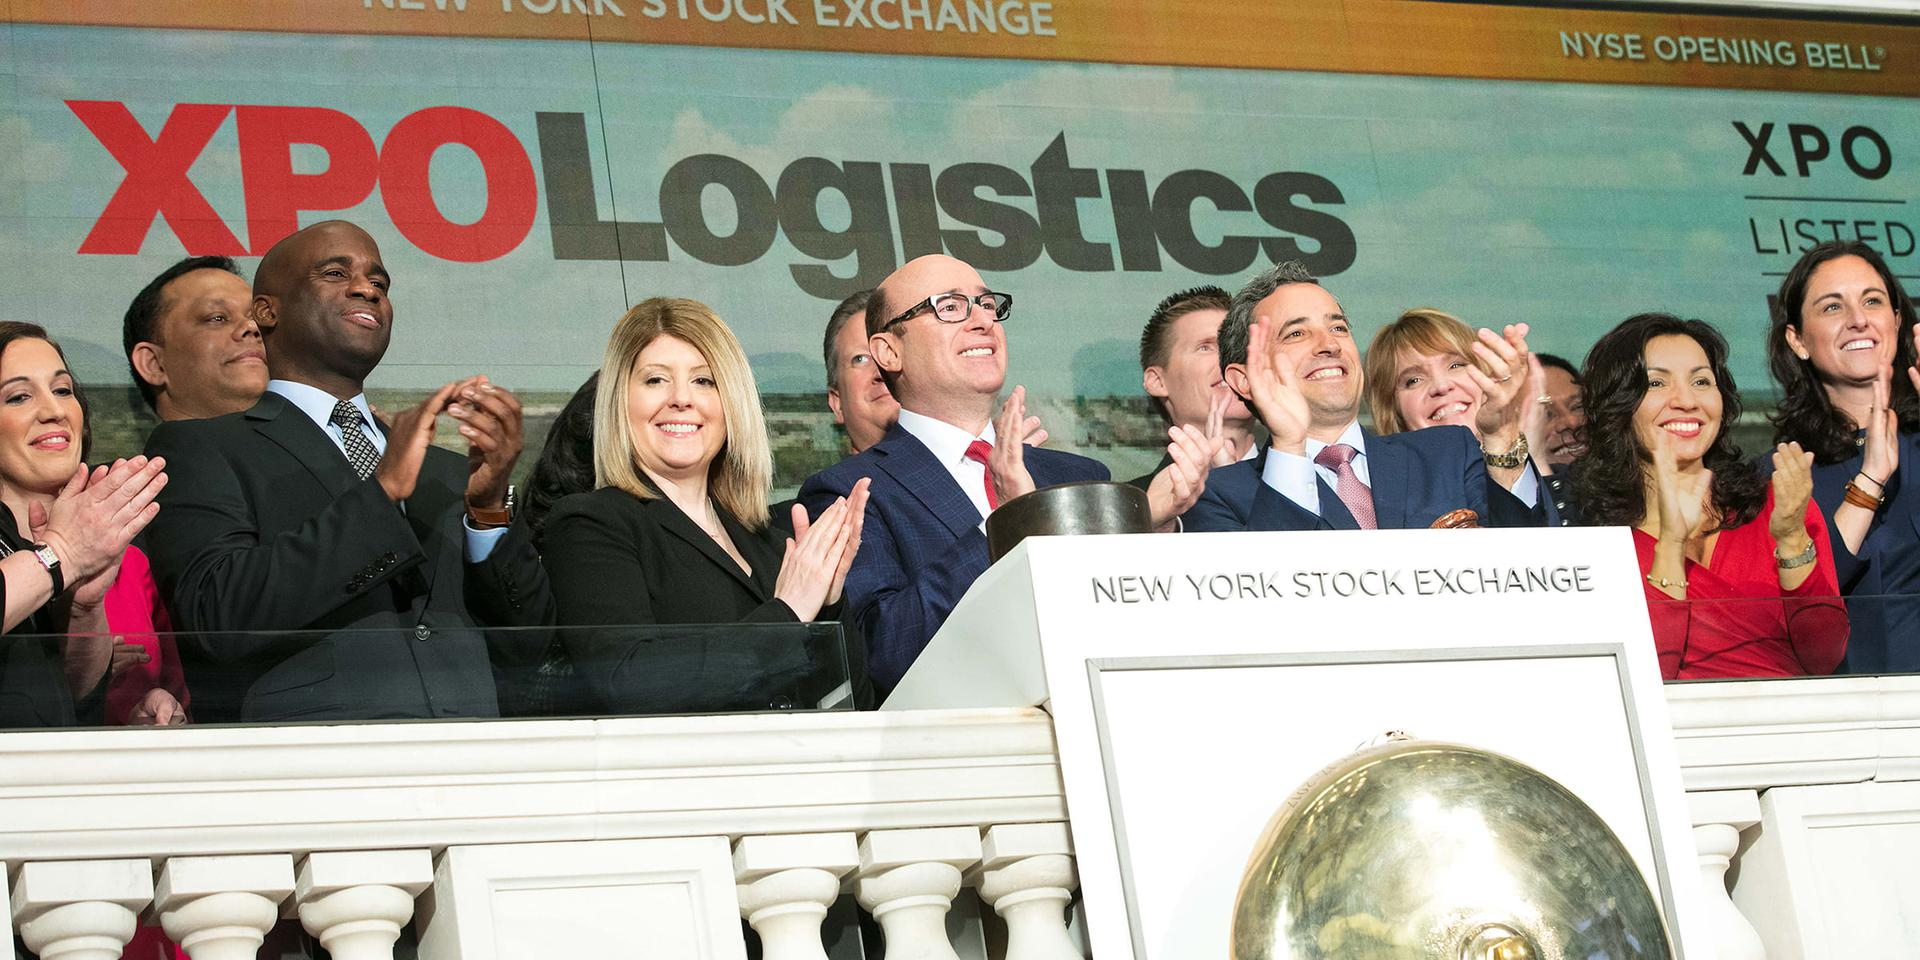 XPO leadership ringing the opening bell at the New York Stock Exchange